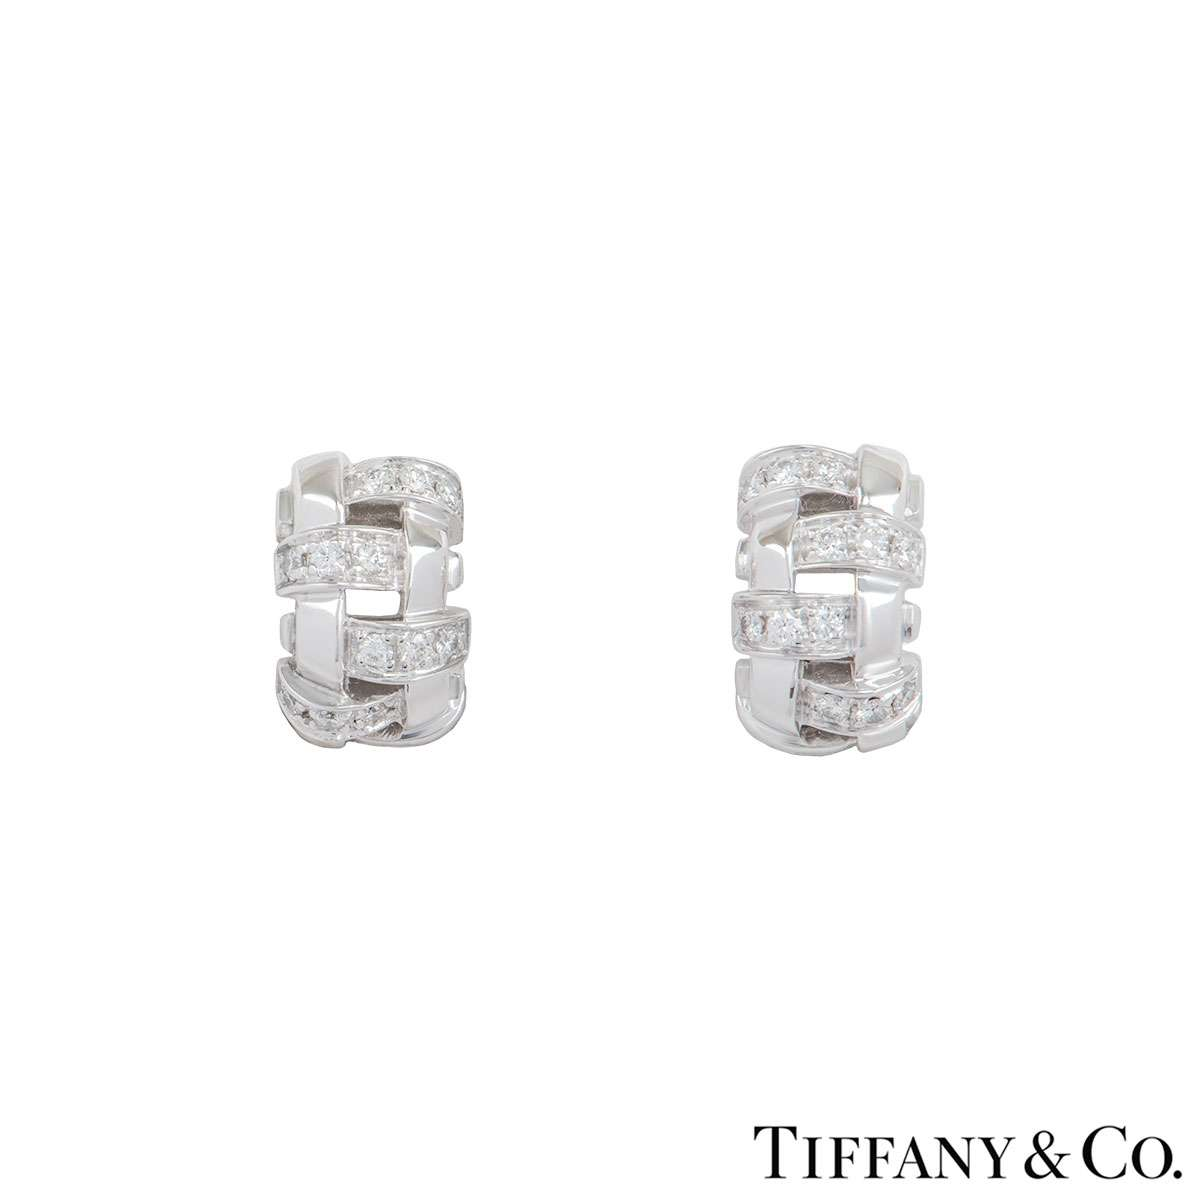 Tiffany & Co. White Gold Lattice Diamond Earrings